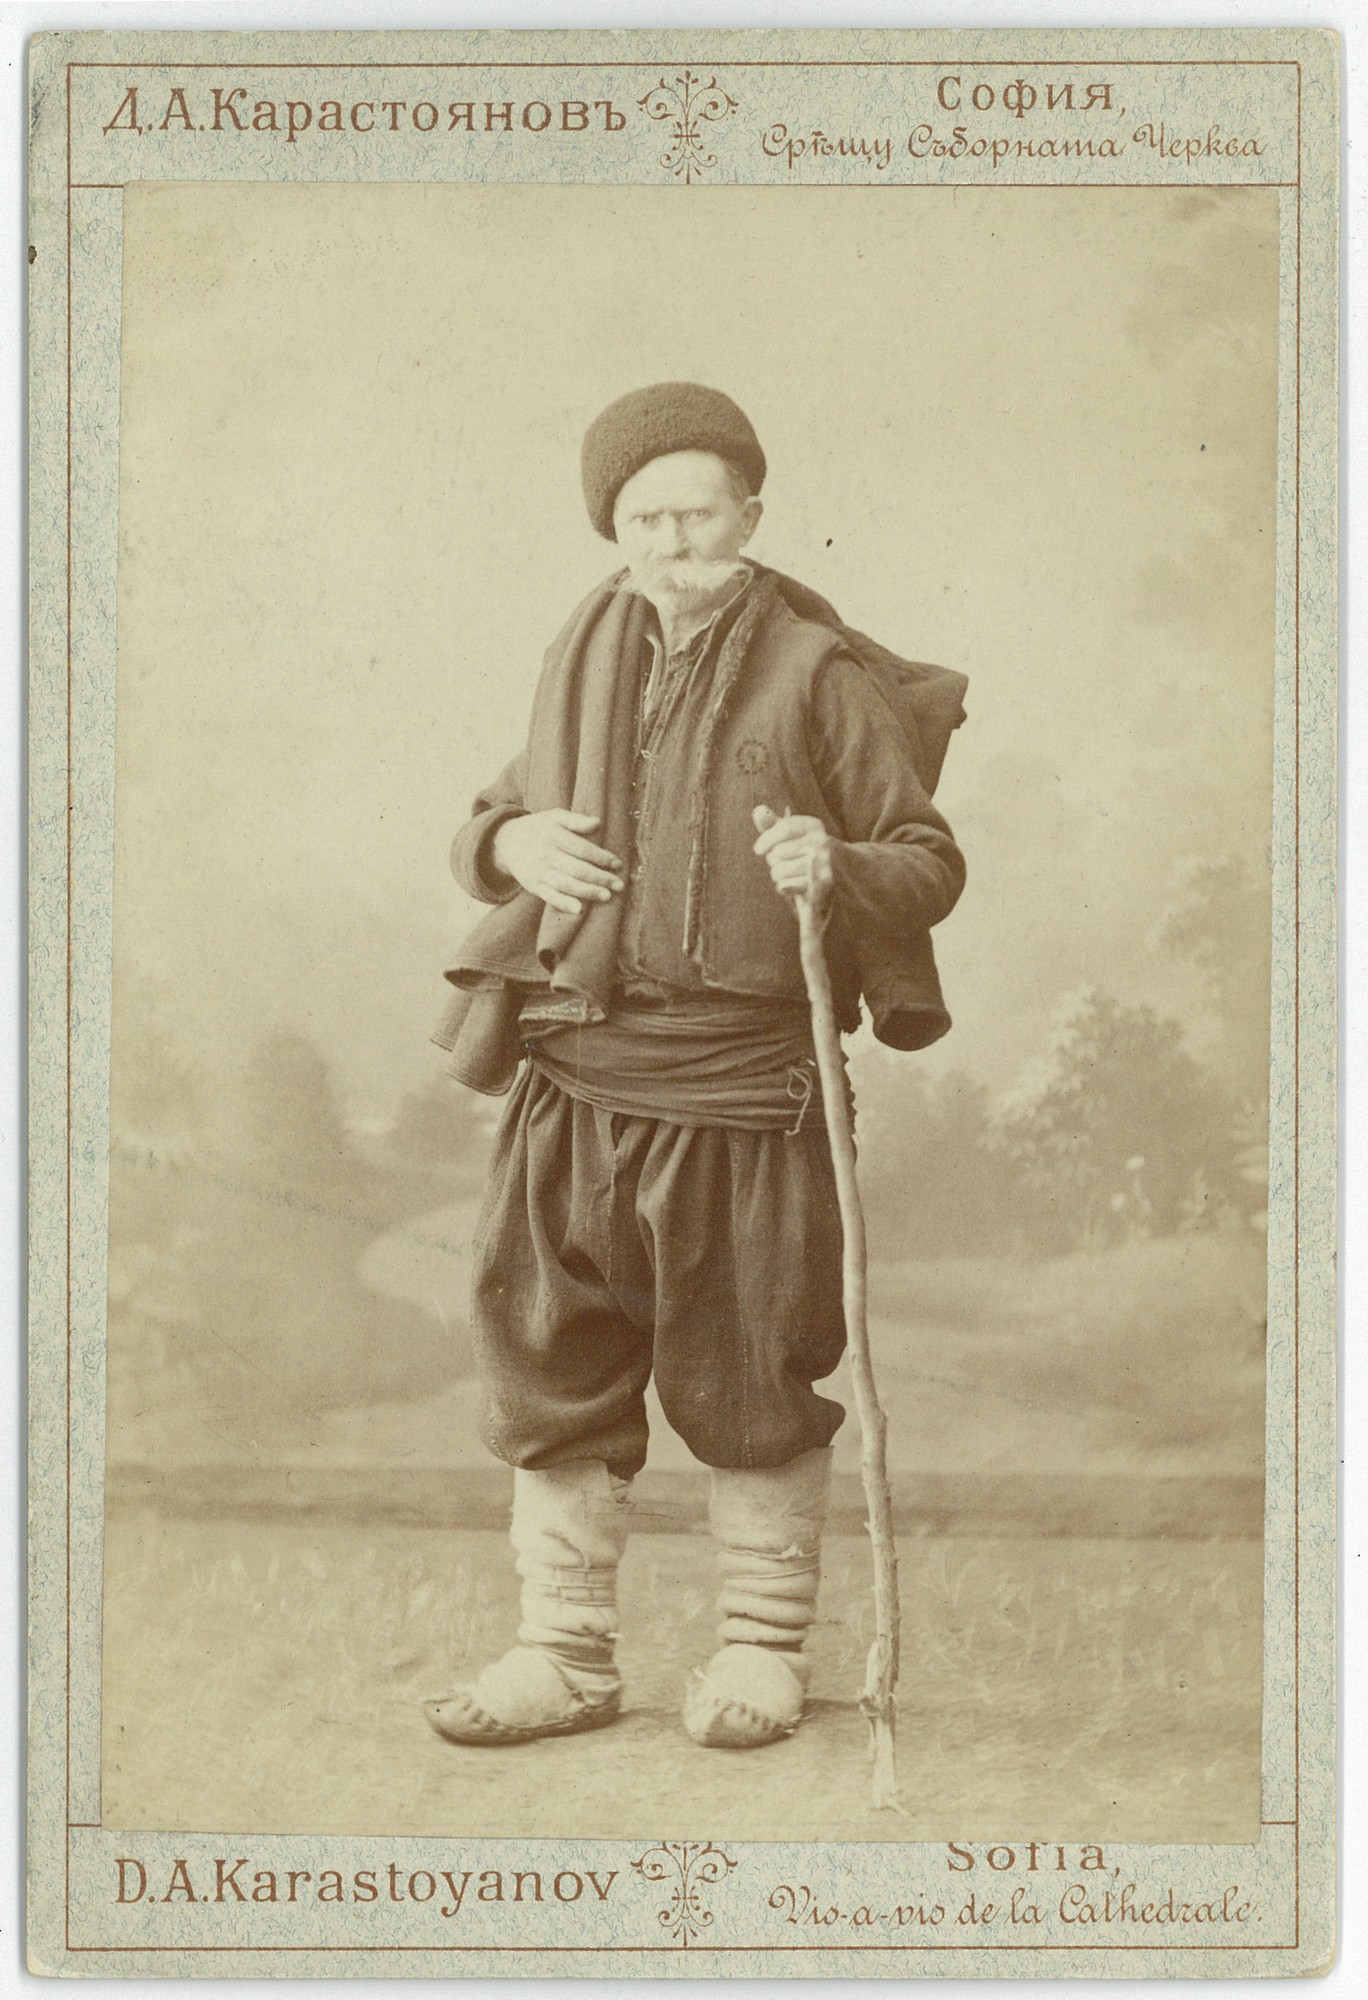 Studio portrait of a man in folk attire, © Scientific Archive of the Bulgarian Academy of Sciences